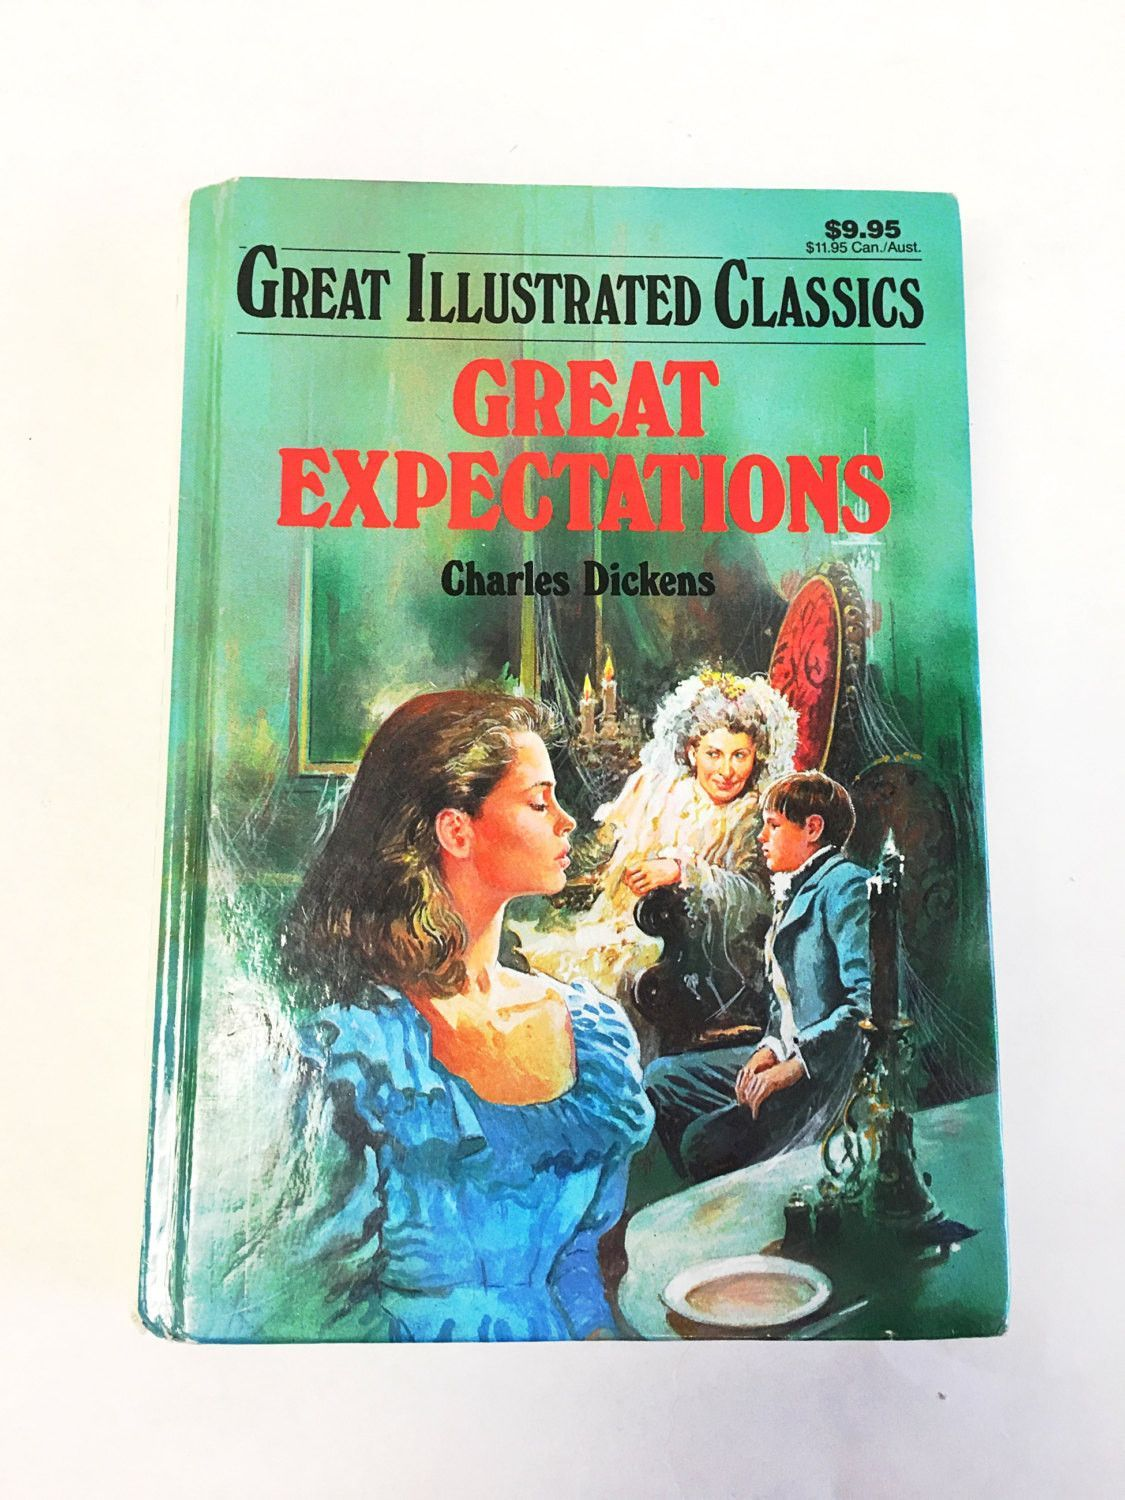 social class in great expectations by Great expectations is set in this new world, and dickens explores it by tracing pip 's ascent through the class system, a trajectory that would not have been possible within the rigid class hierarchy of the past.